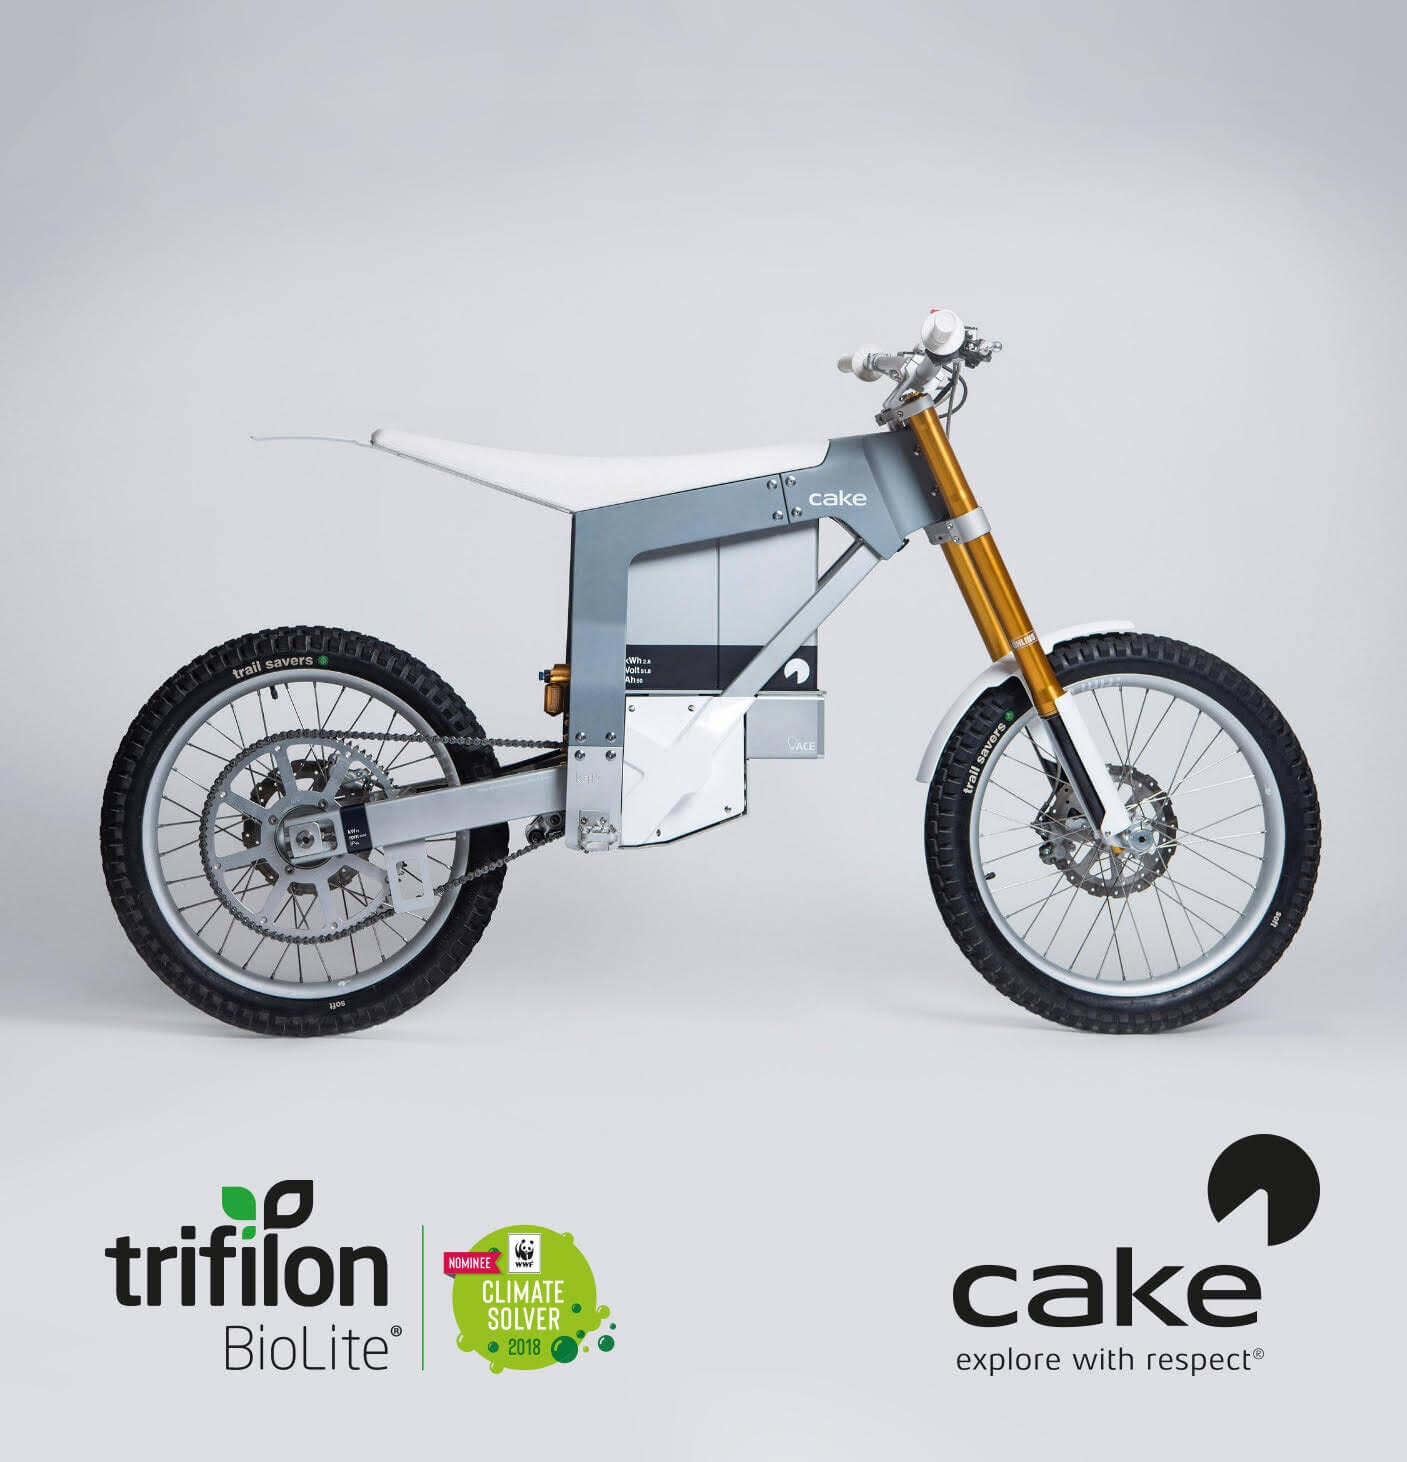 Cake electric motorbikes get new icing by Trifilon